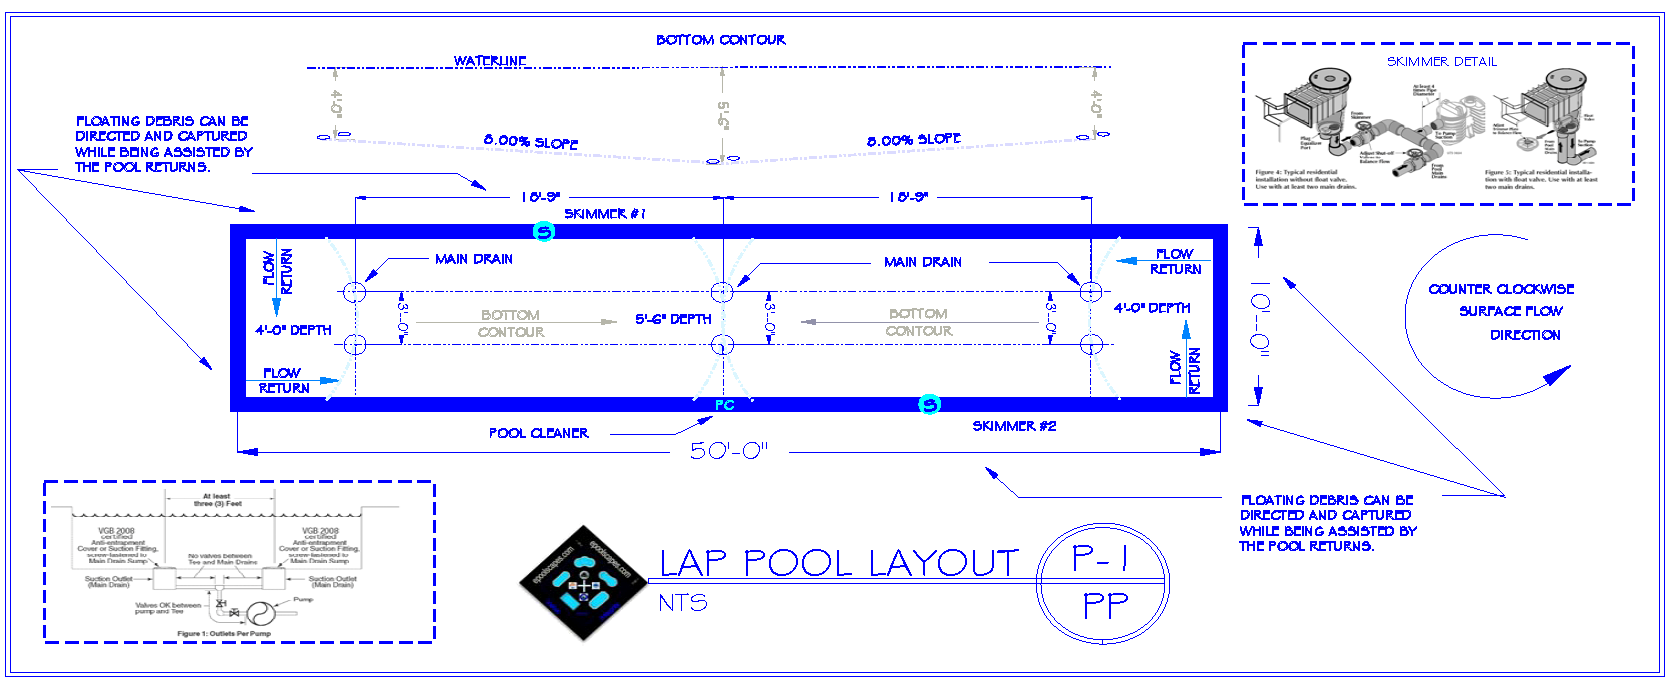 Lap Pool Photos Images Concepts 800 766 5259